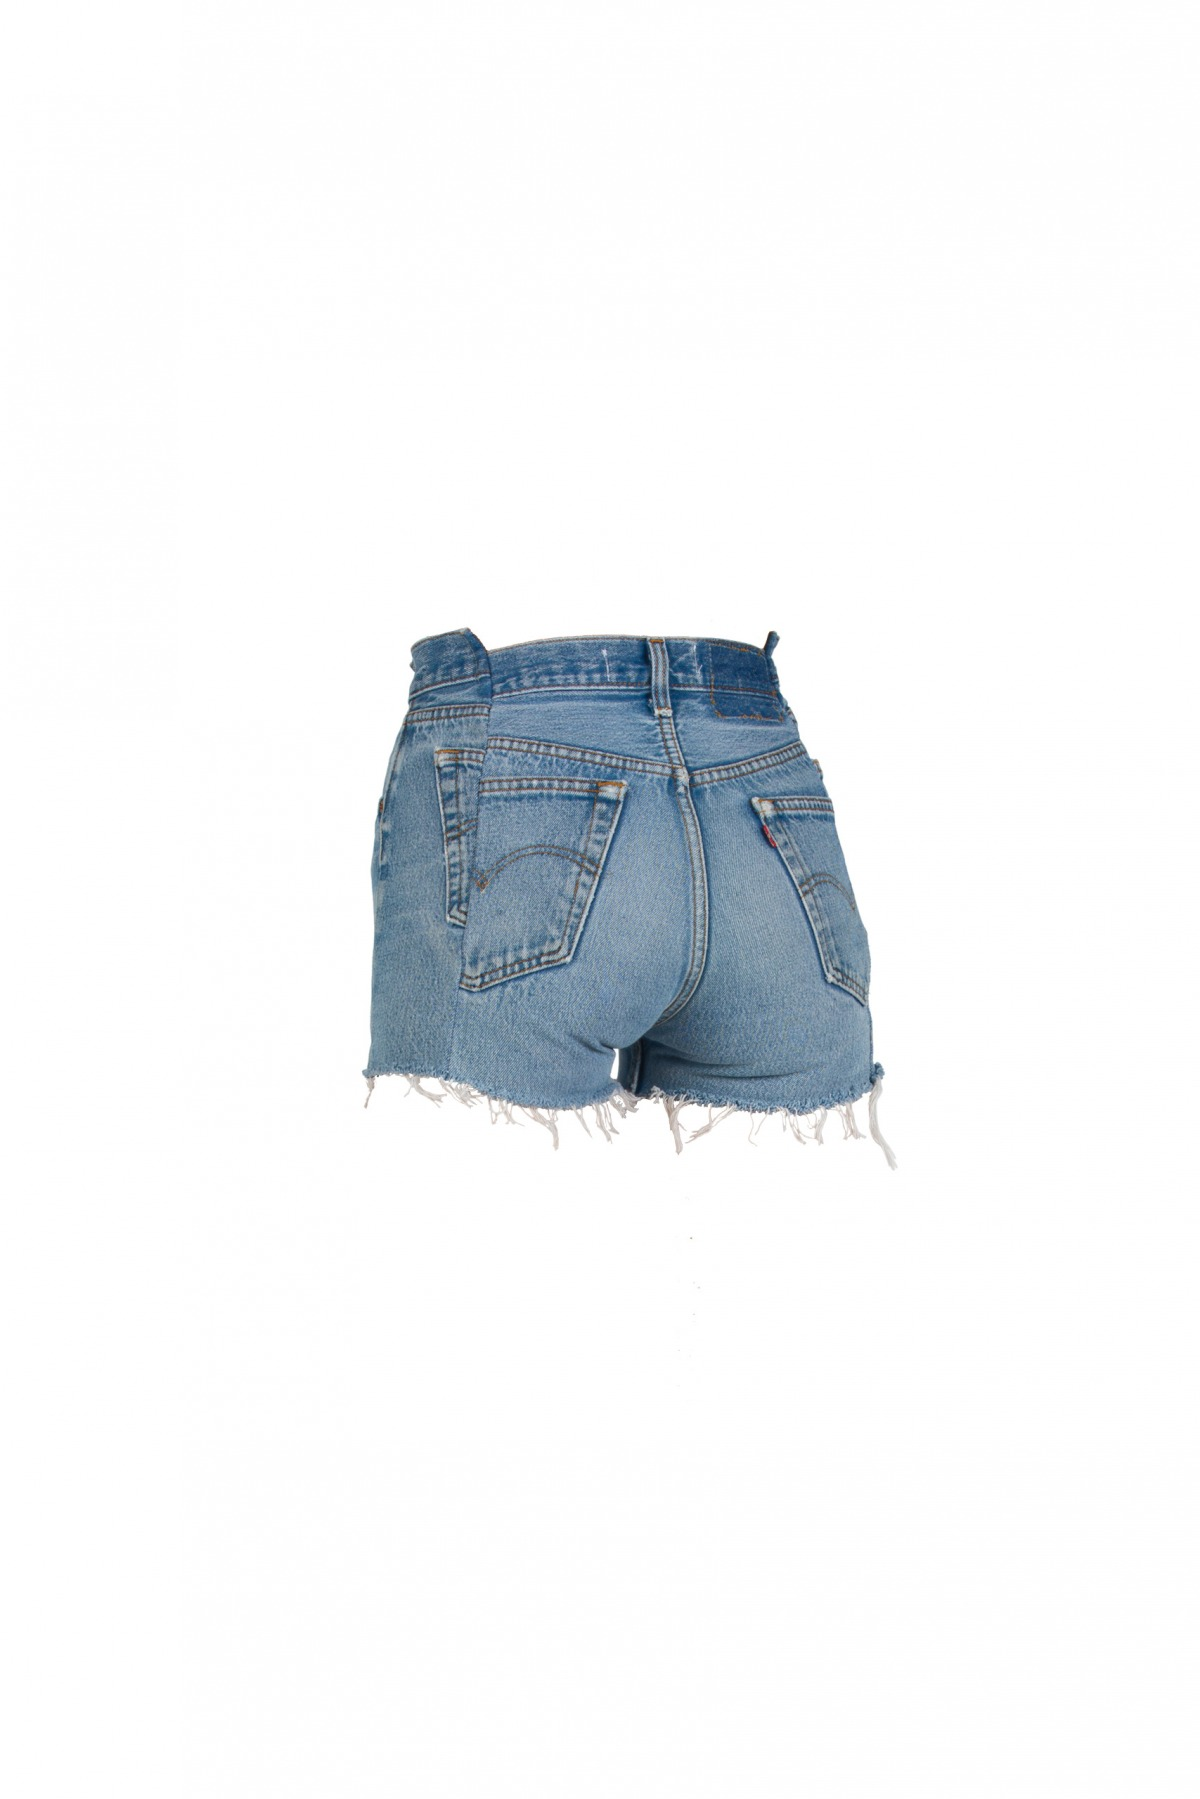 OG Shorts by EB Denim, available on ebdenim.com for $215 Hailey Baldwin Shorts SIMILAR PRODUCT